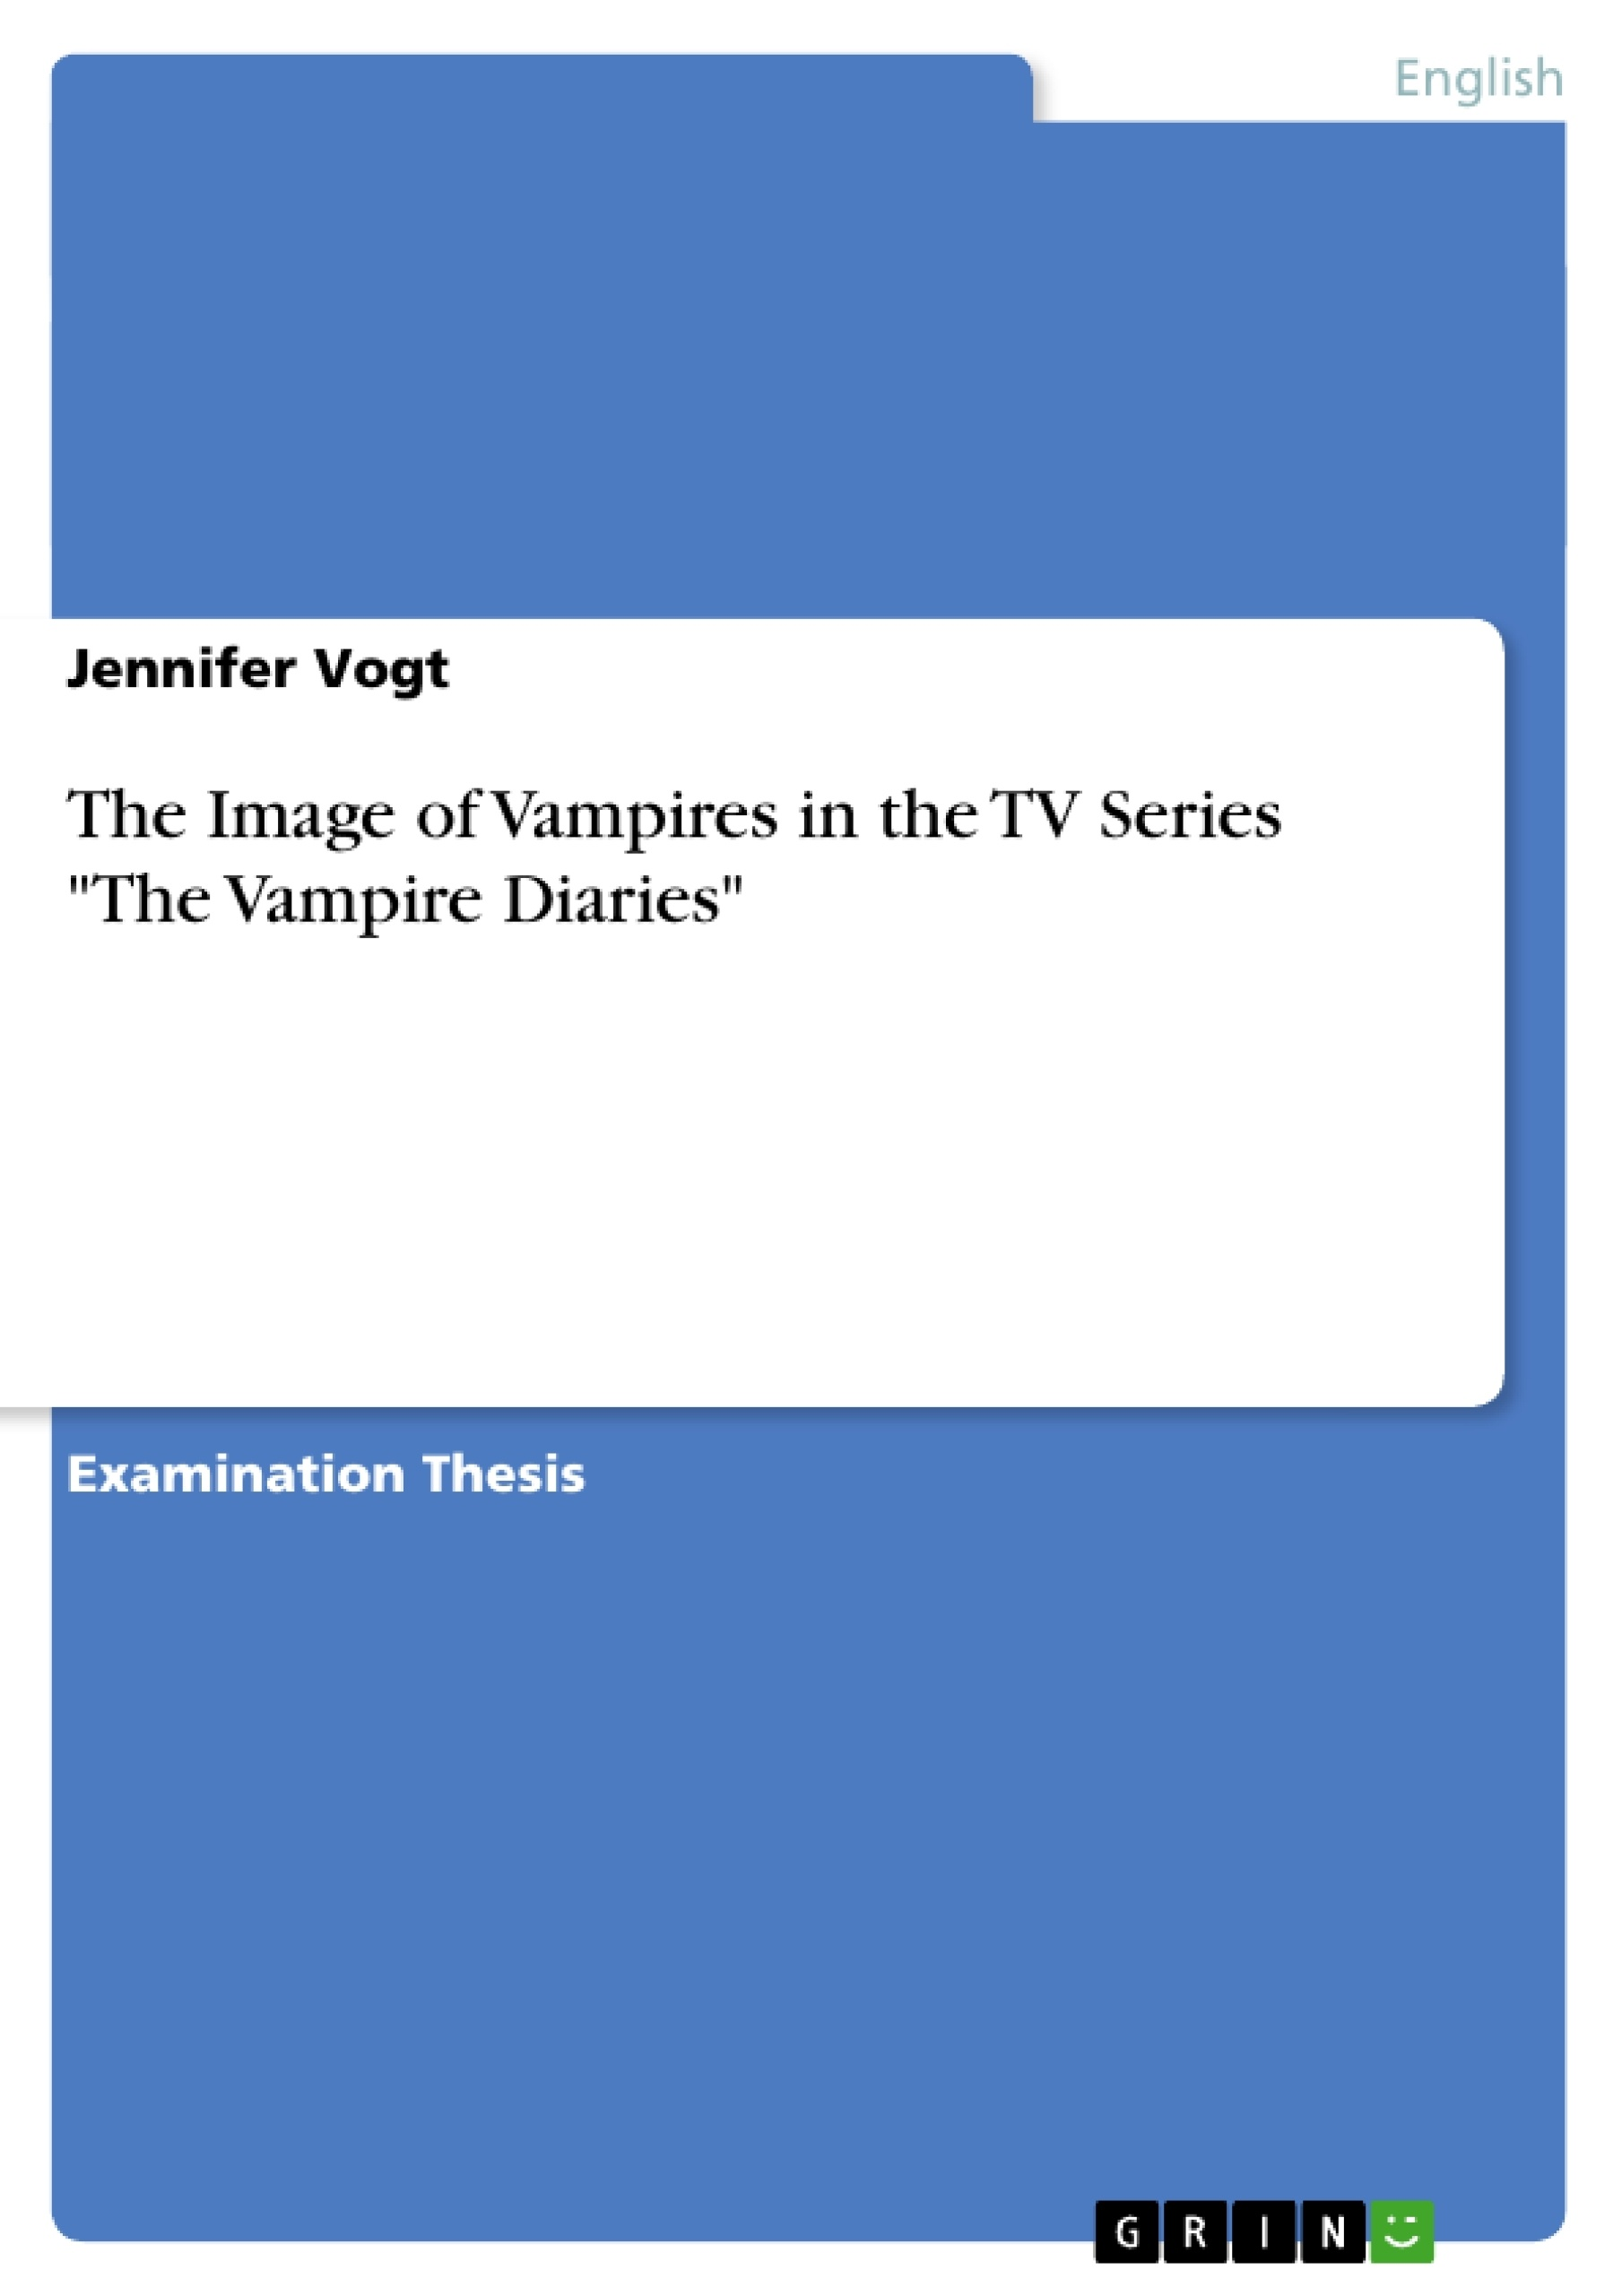 """Title: The Image of Vampires in the TV Series """"The Vampire Diaries"""""""